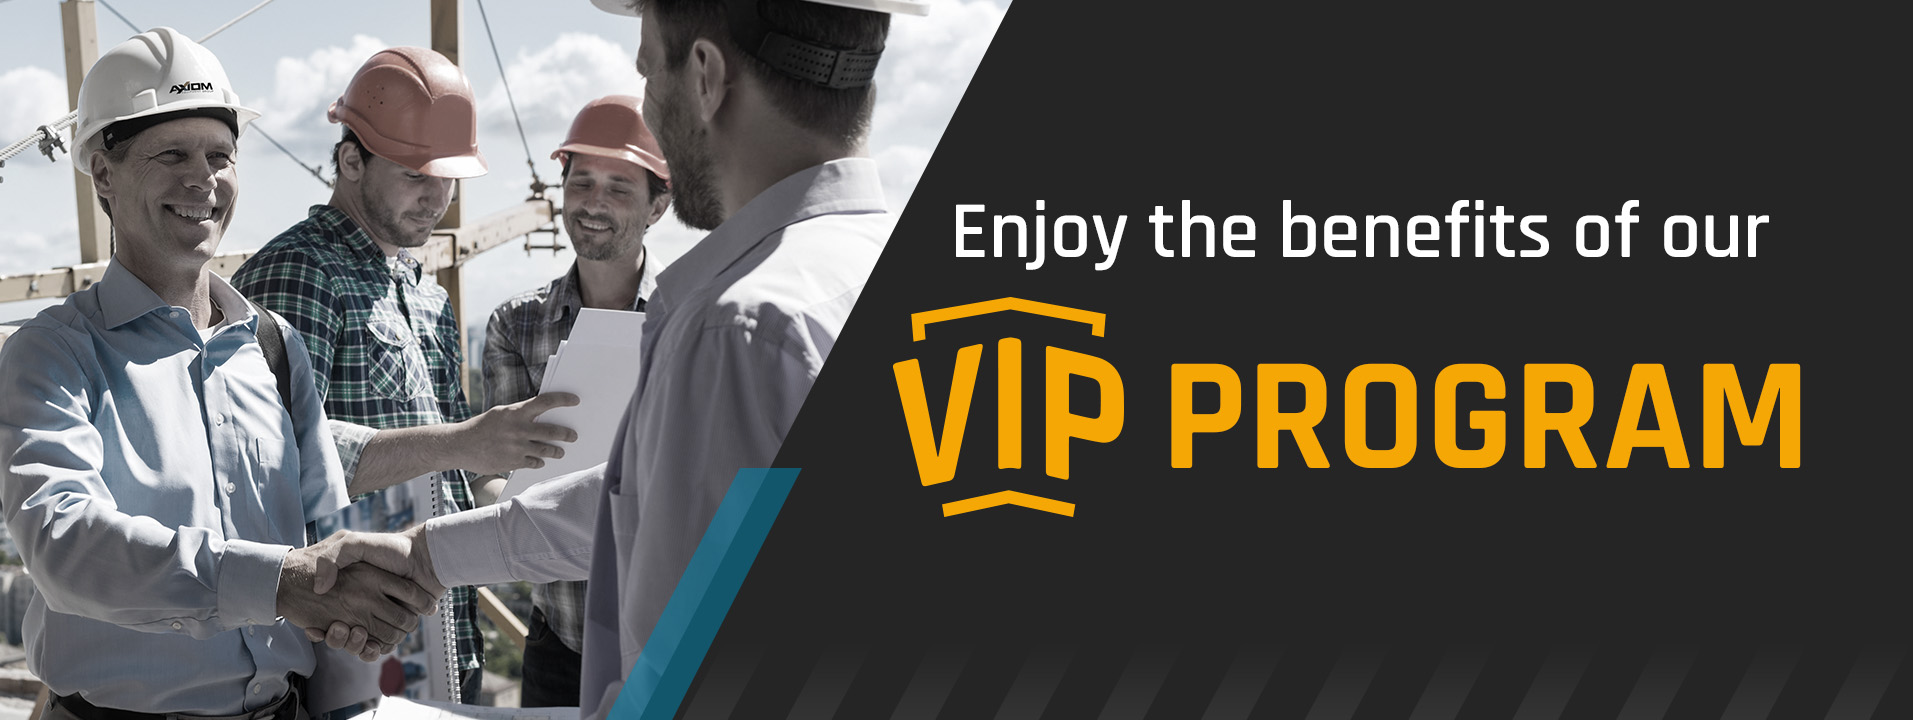 Axiom Equipment Group VIP Program